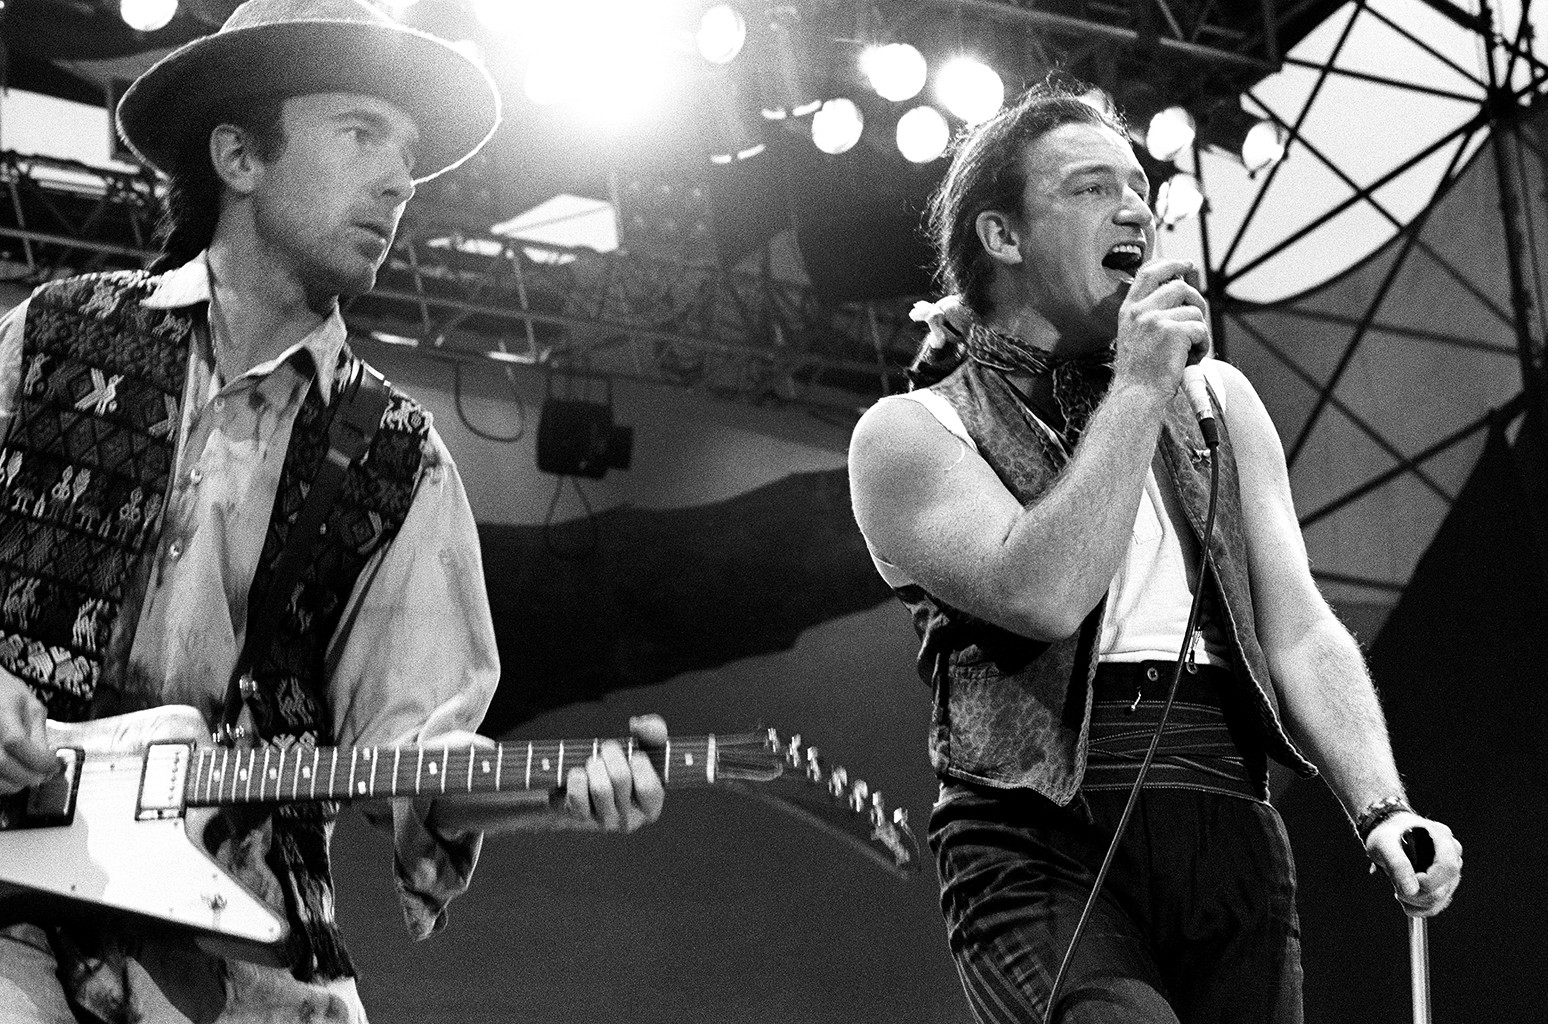 The Edge and Bono of U2 perform during The Joshua Tree Tour on July 10, 1987.